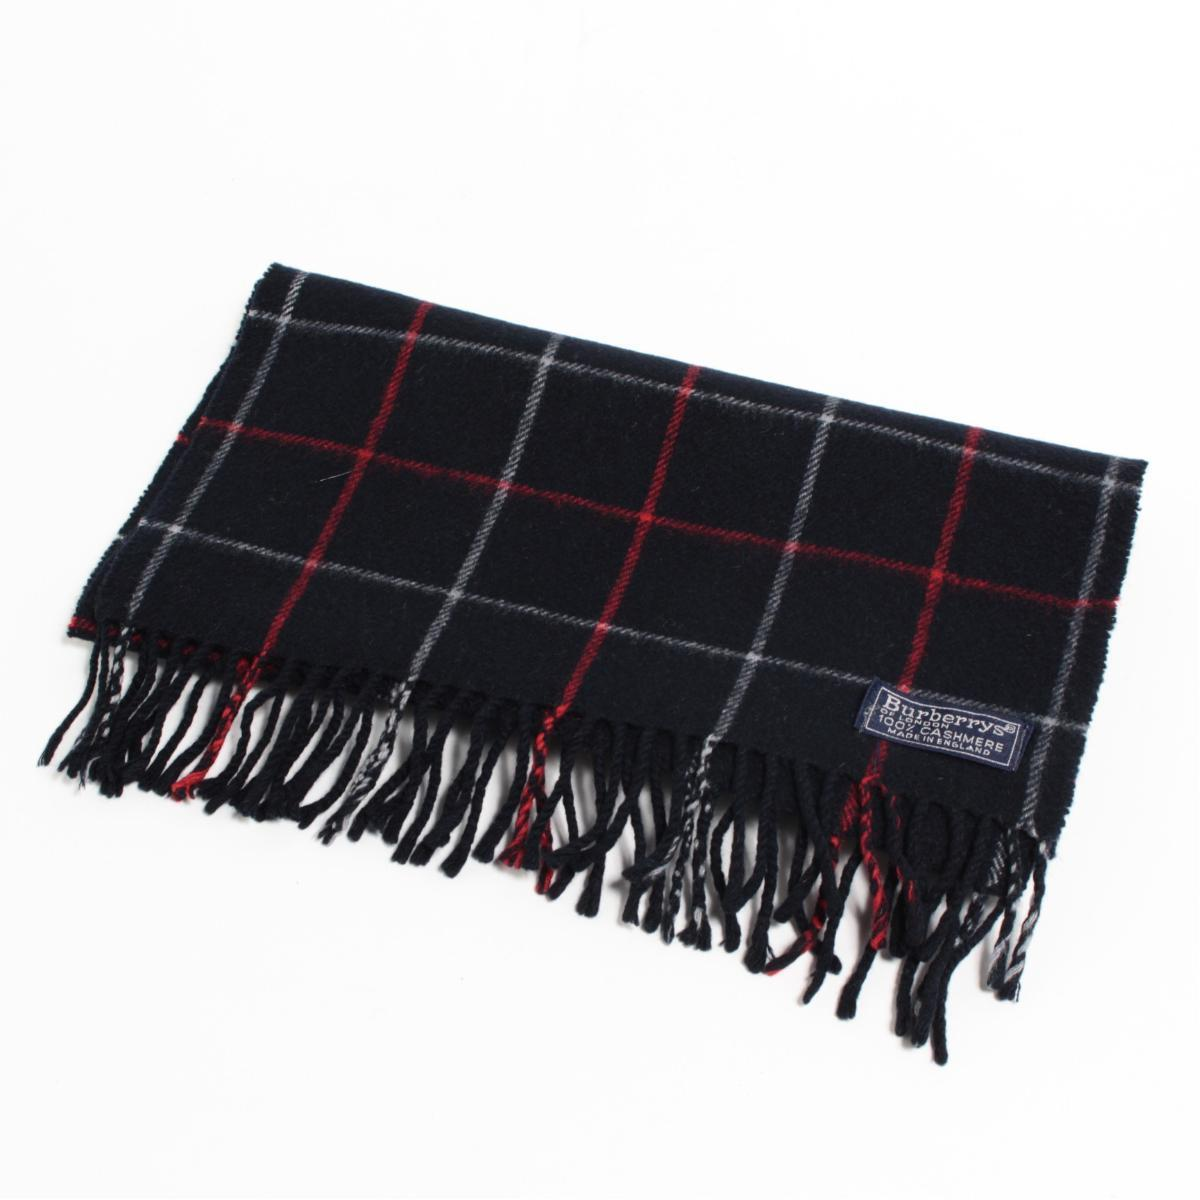 9d3446389984 ... x check 9638a 4b6a5  usa anb4815 made in the burberry burberry london  checked pattern cashmere scarf u.k. 083aa c117d